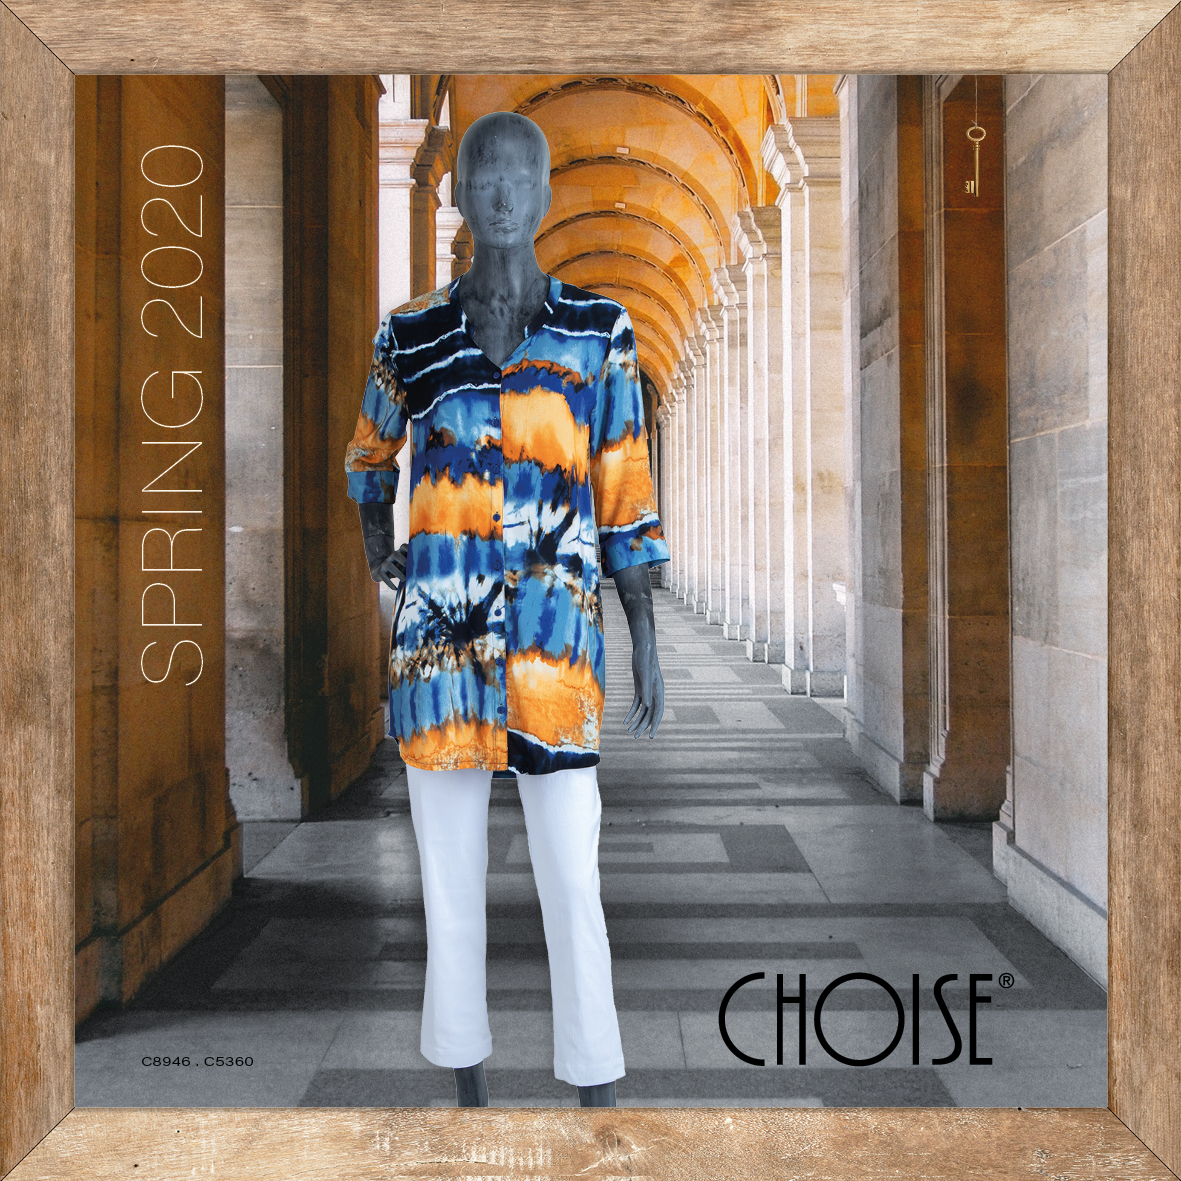 Choise Collection